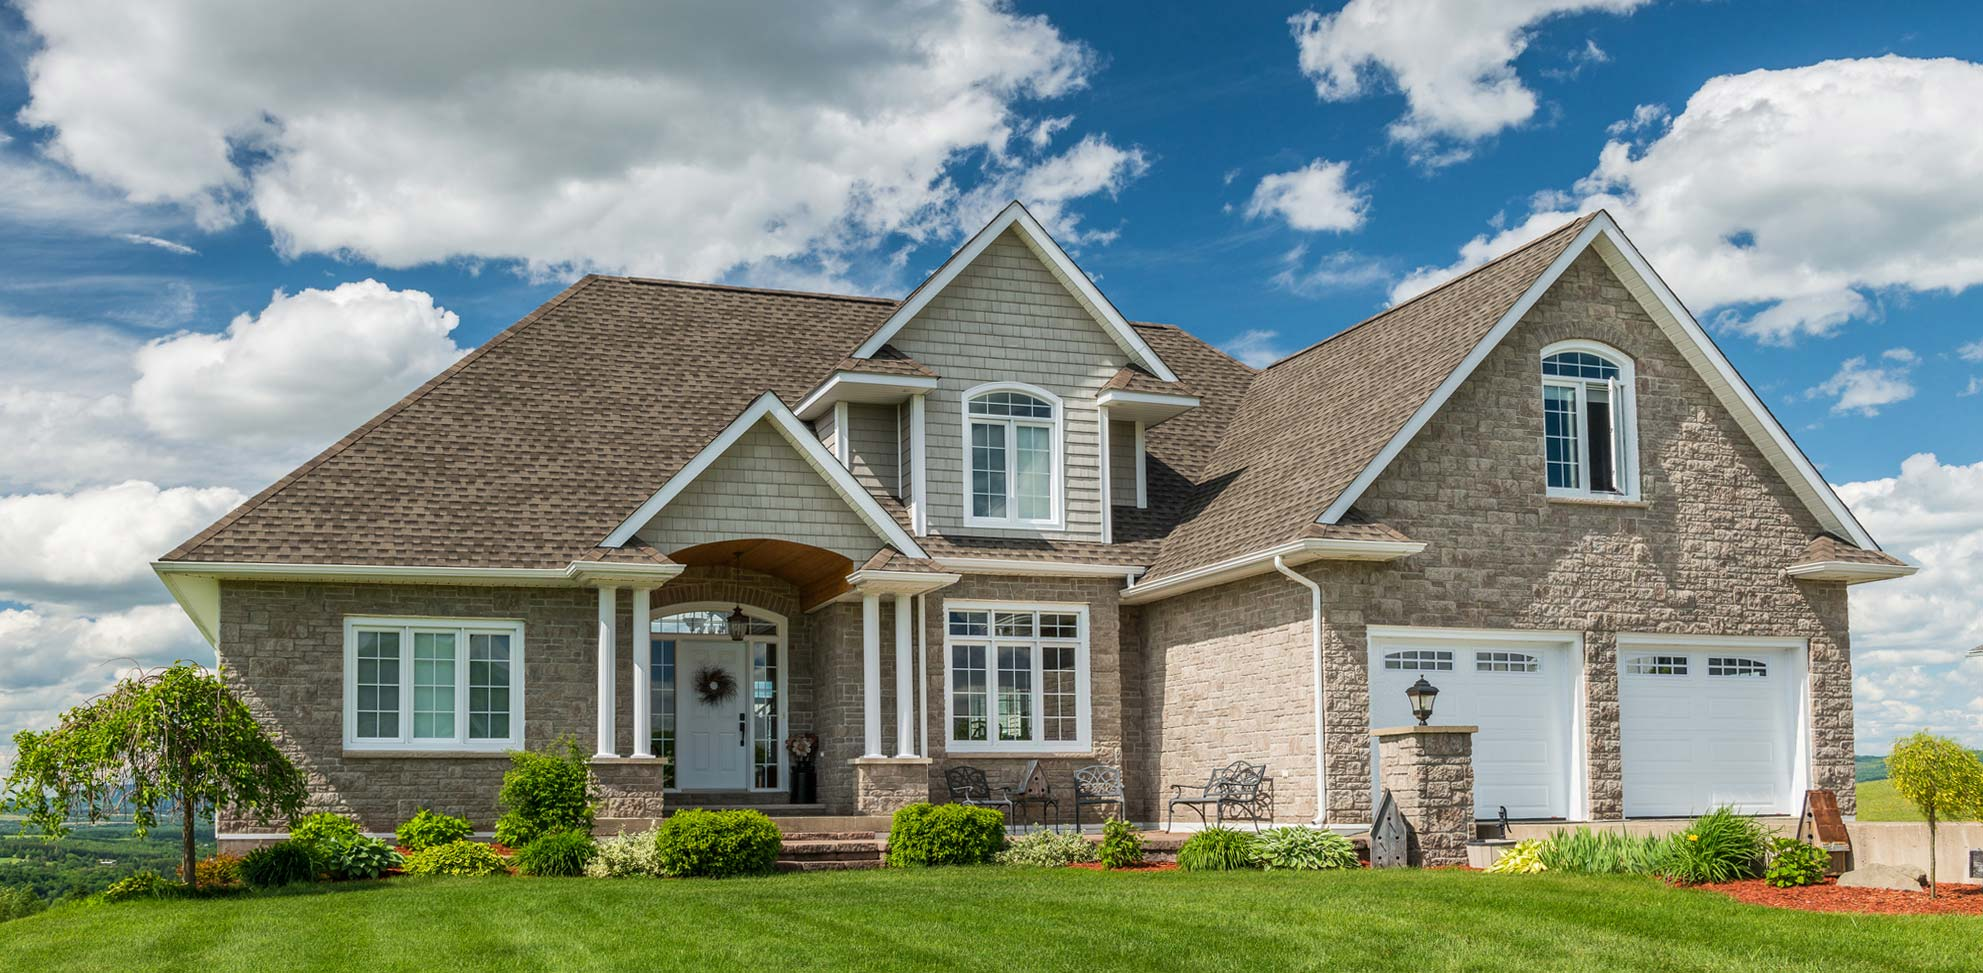 Beautiful family residential house on a hilltop seen while preforming a home inspection